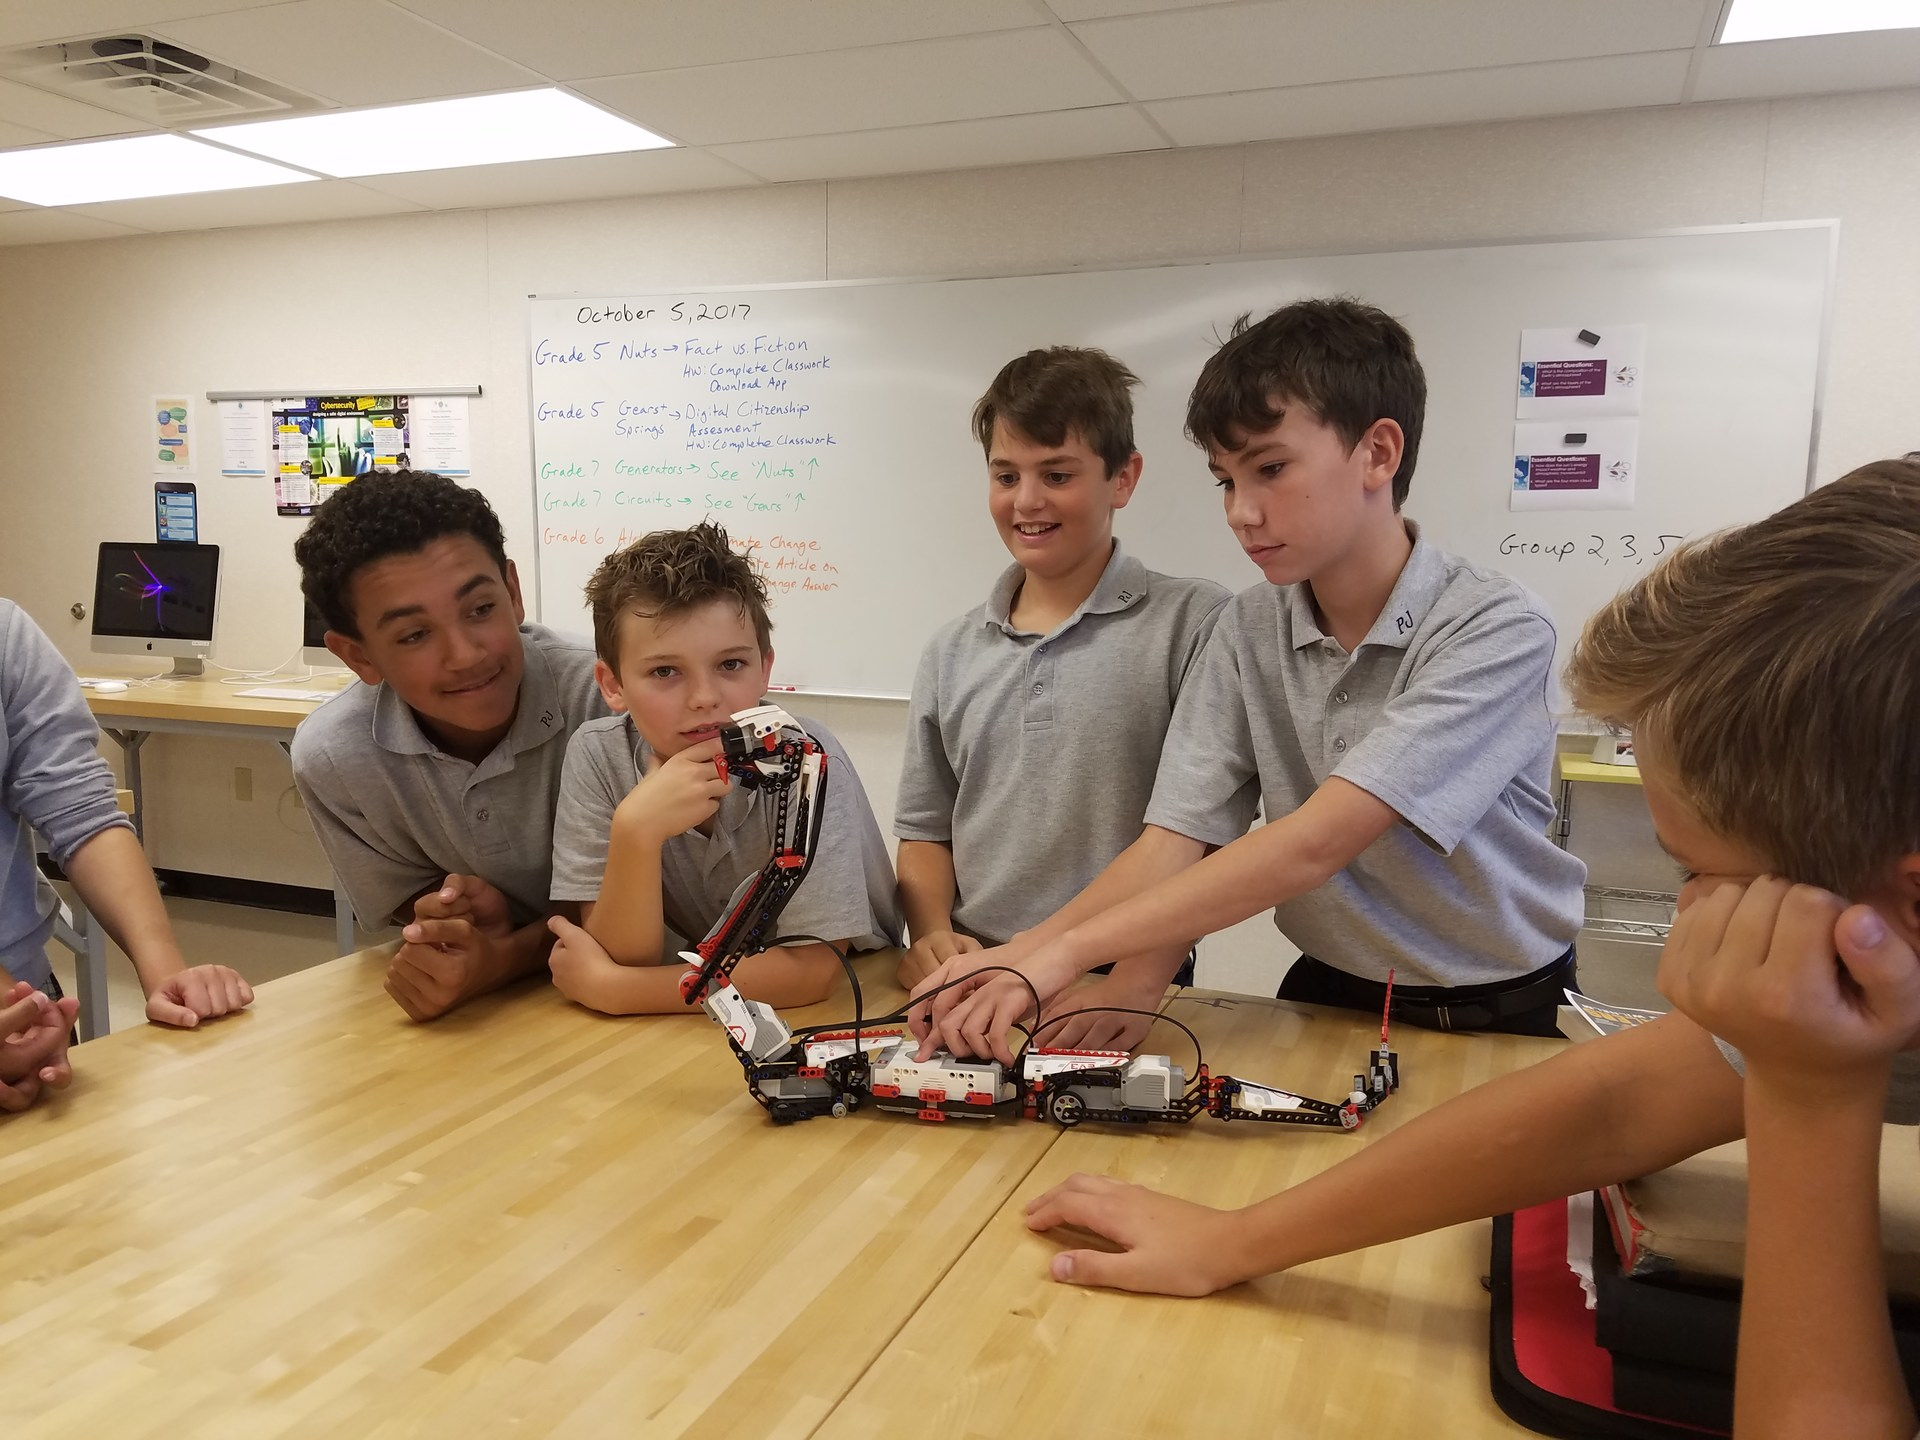 Group of boys build robot